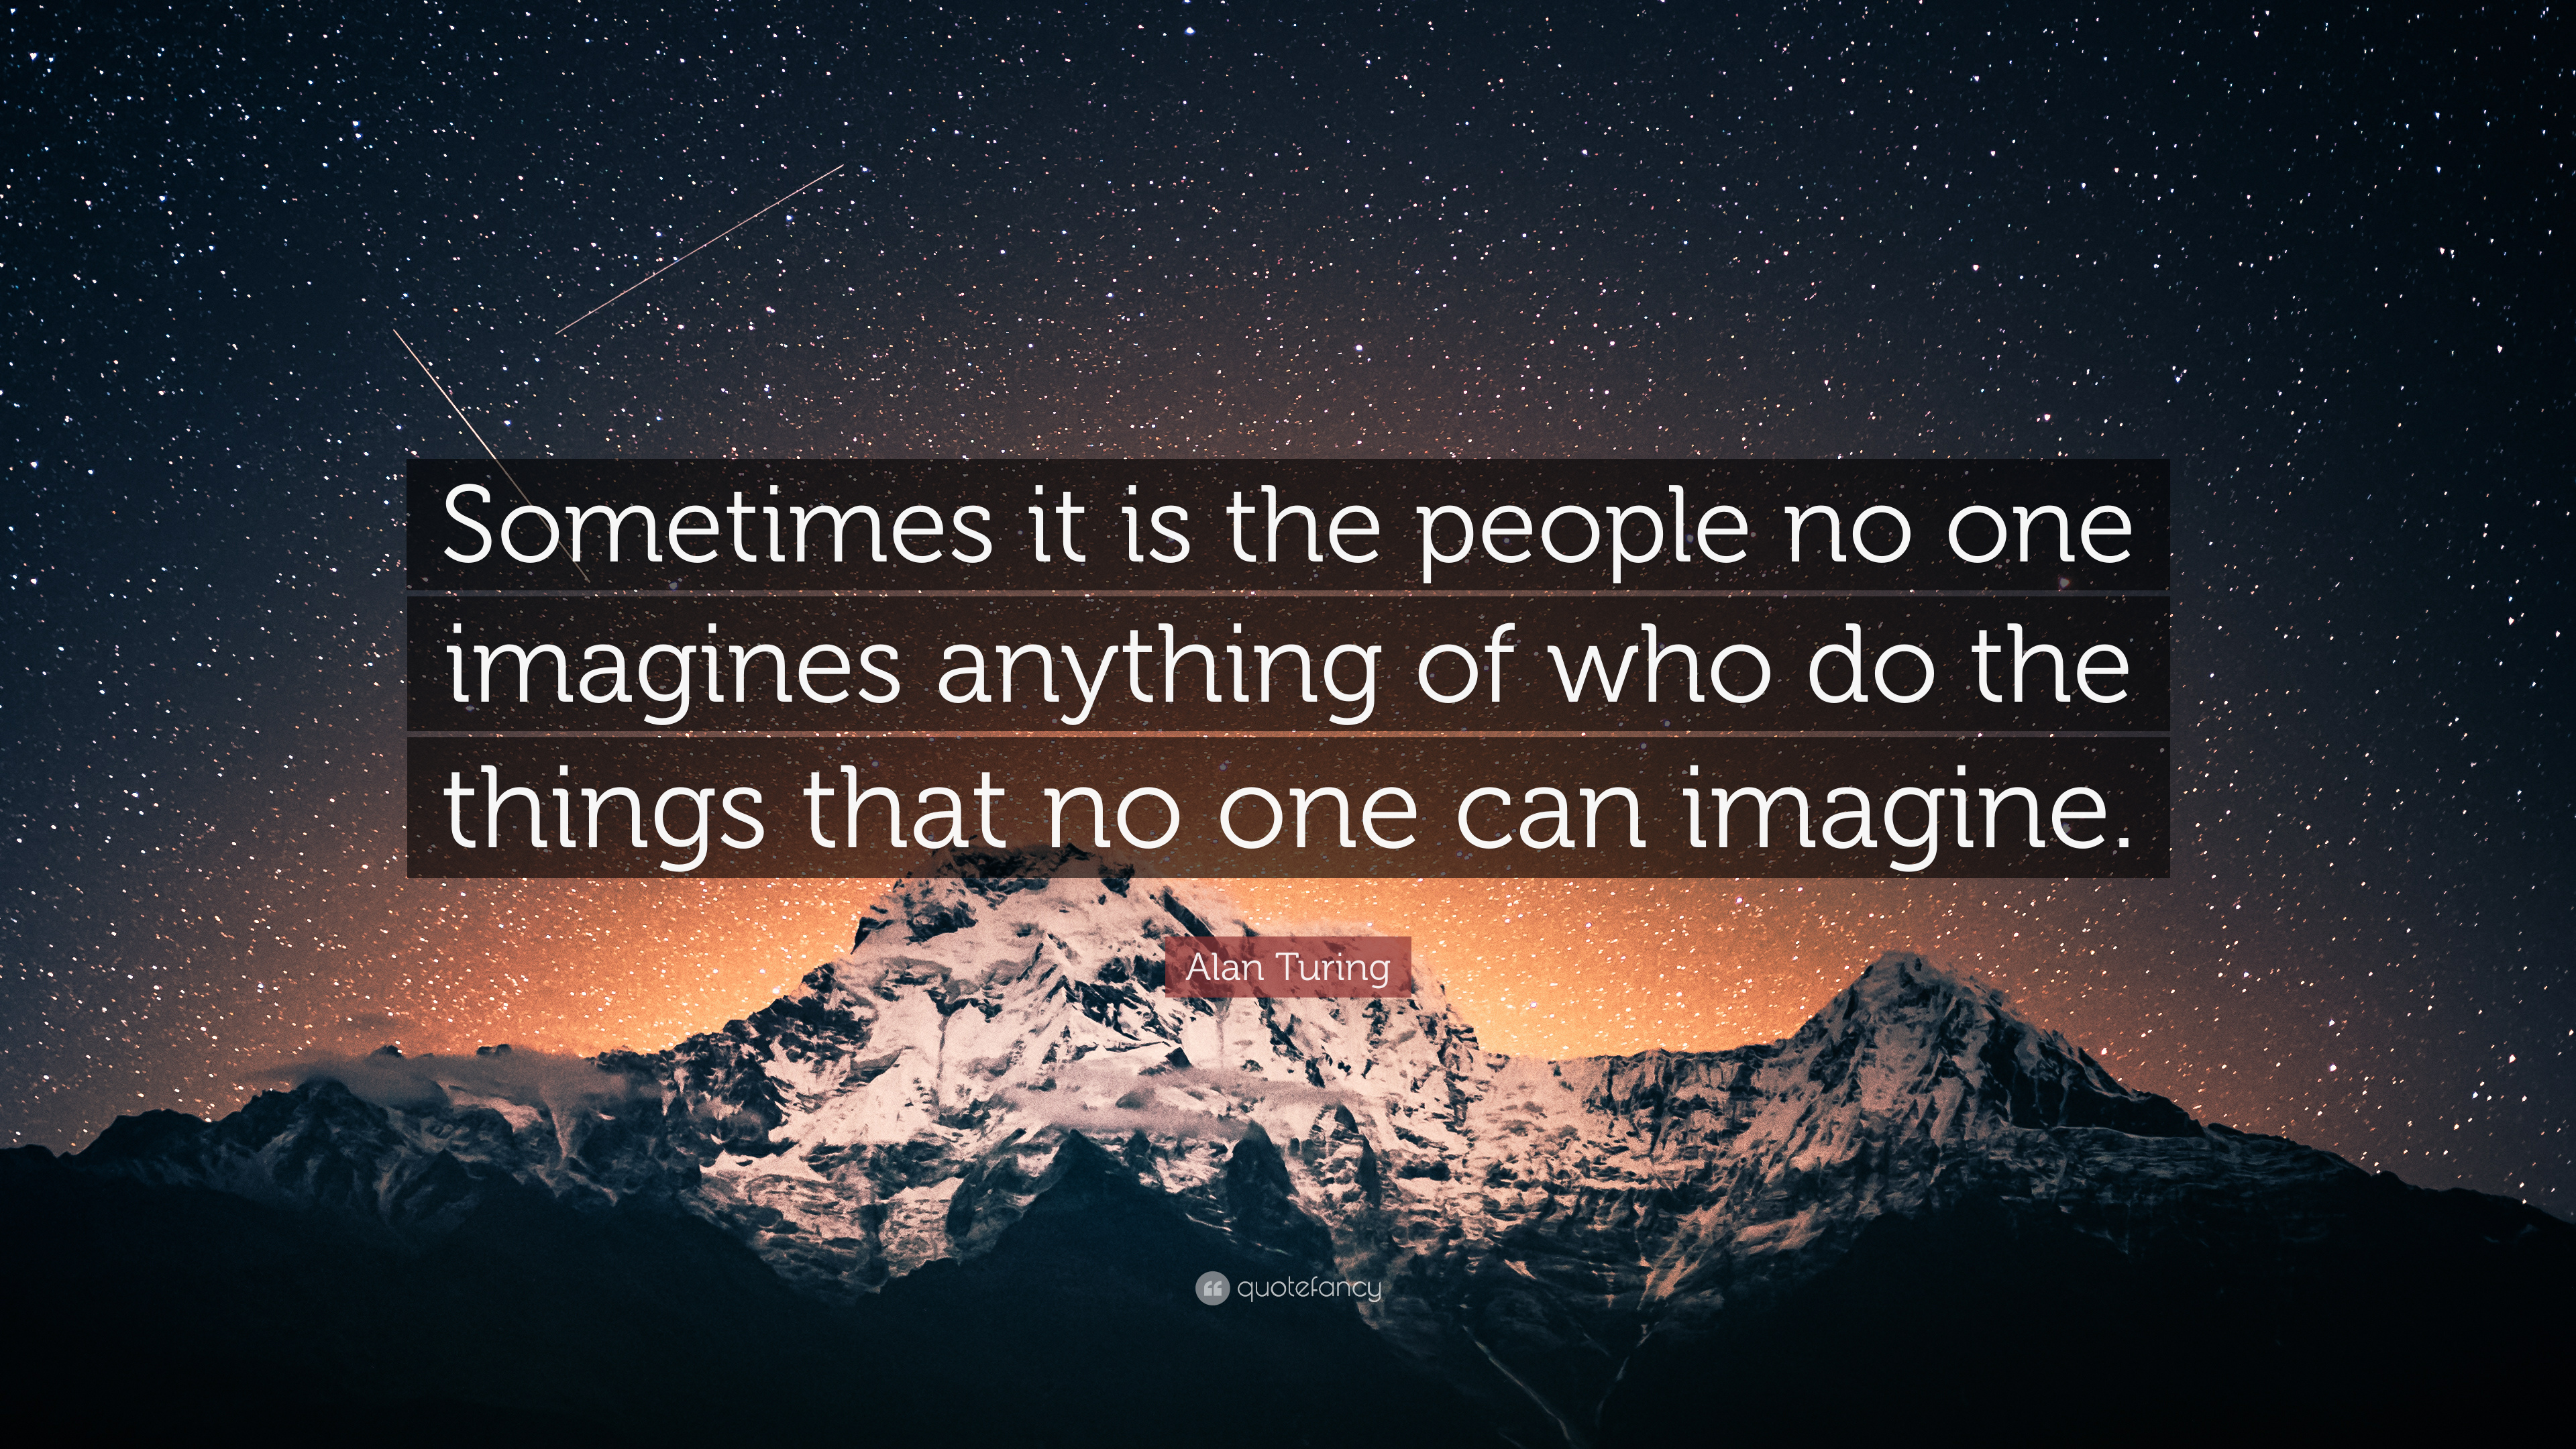 2010522-Alan-Turing-Quote-Sometimes-it-is-the-people-no-one-imagines.jpg